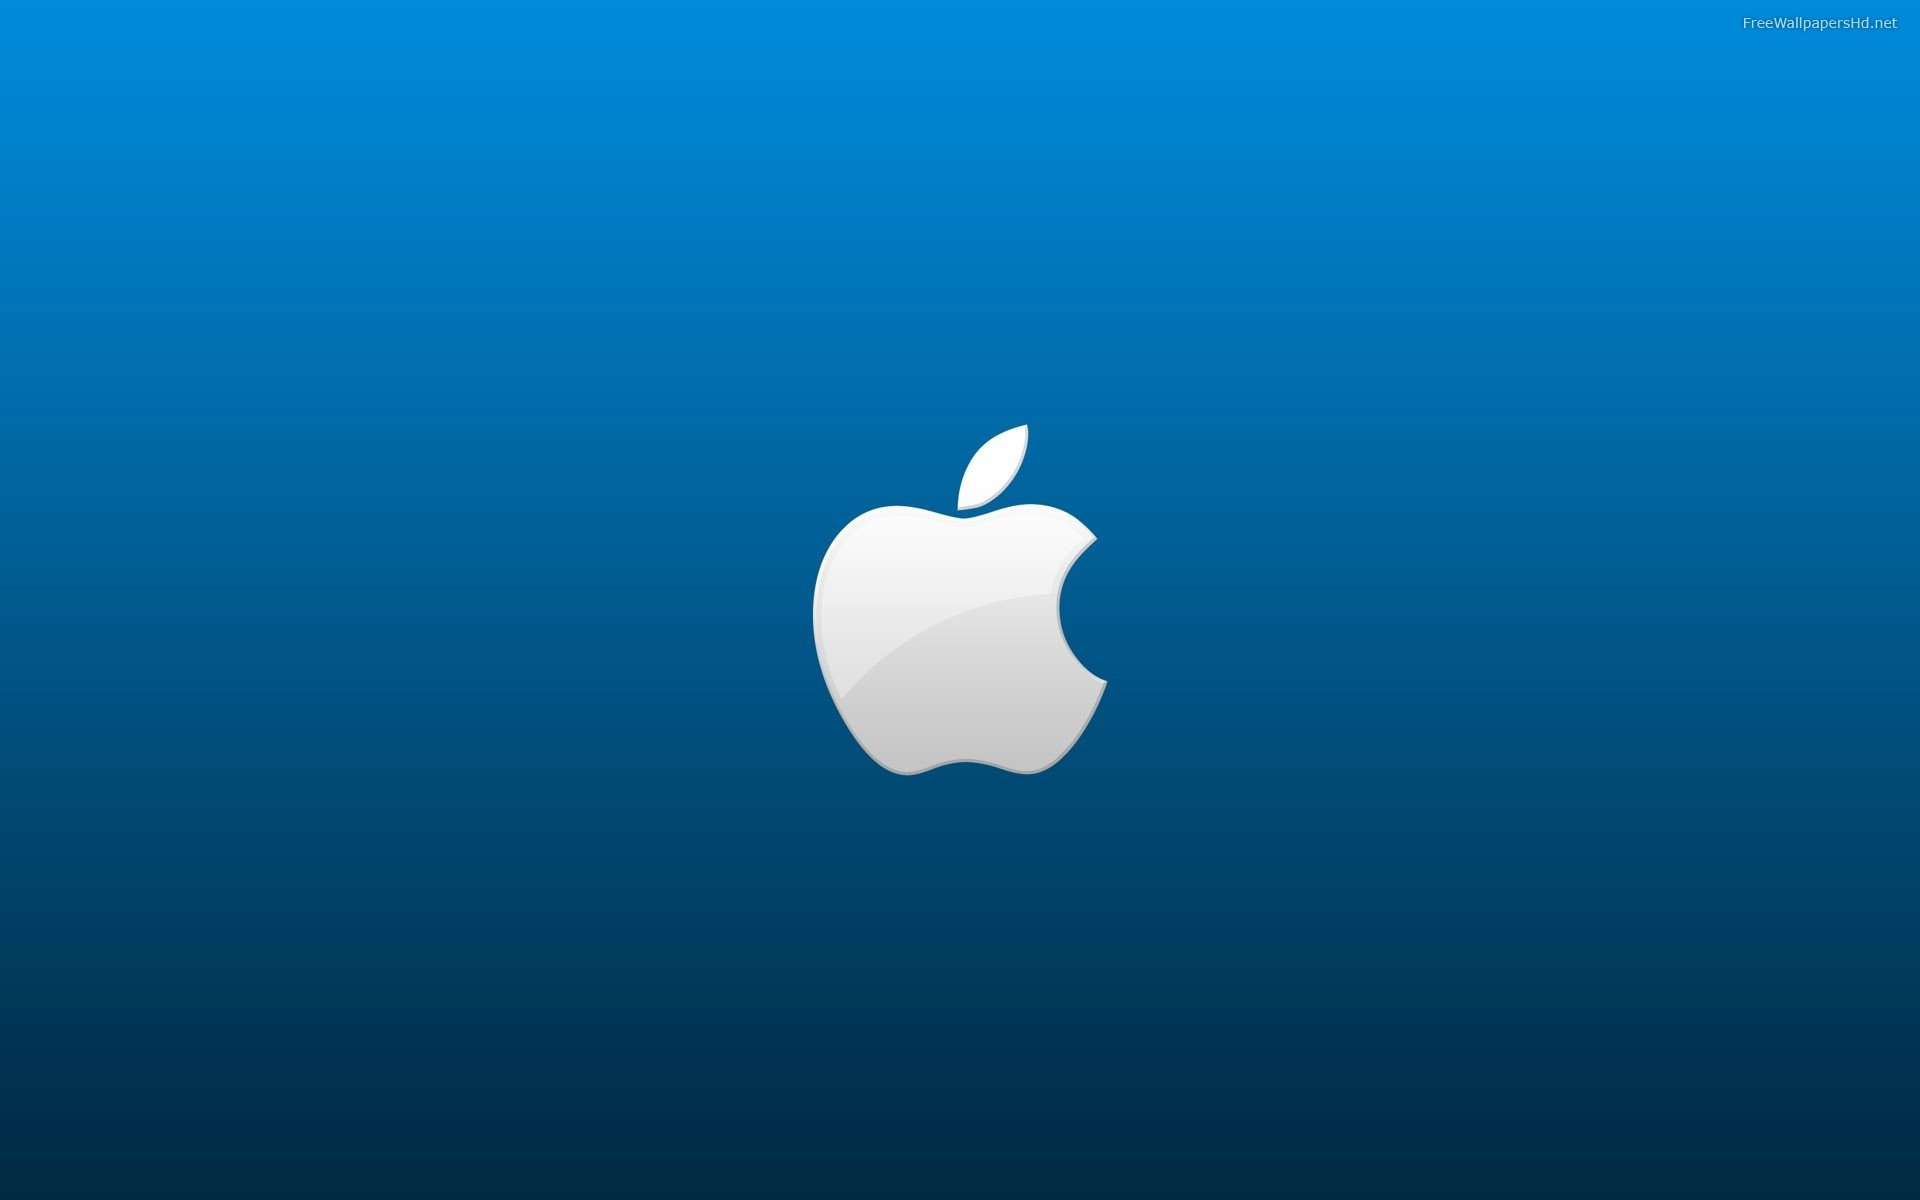 apple blue wallpaper images widescreen wallpapers originaljpg 1920x1200